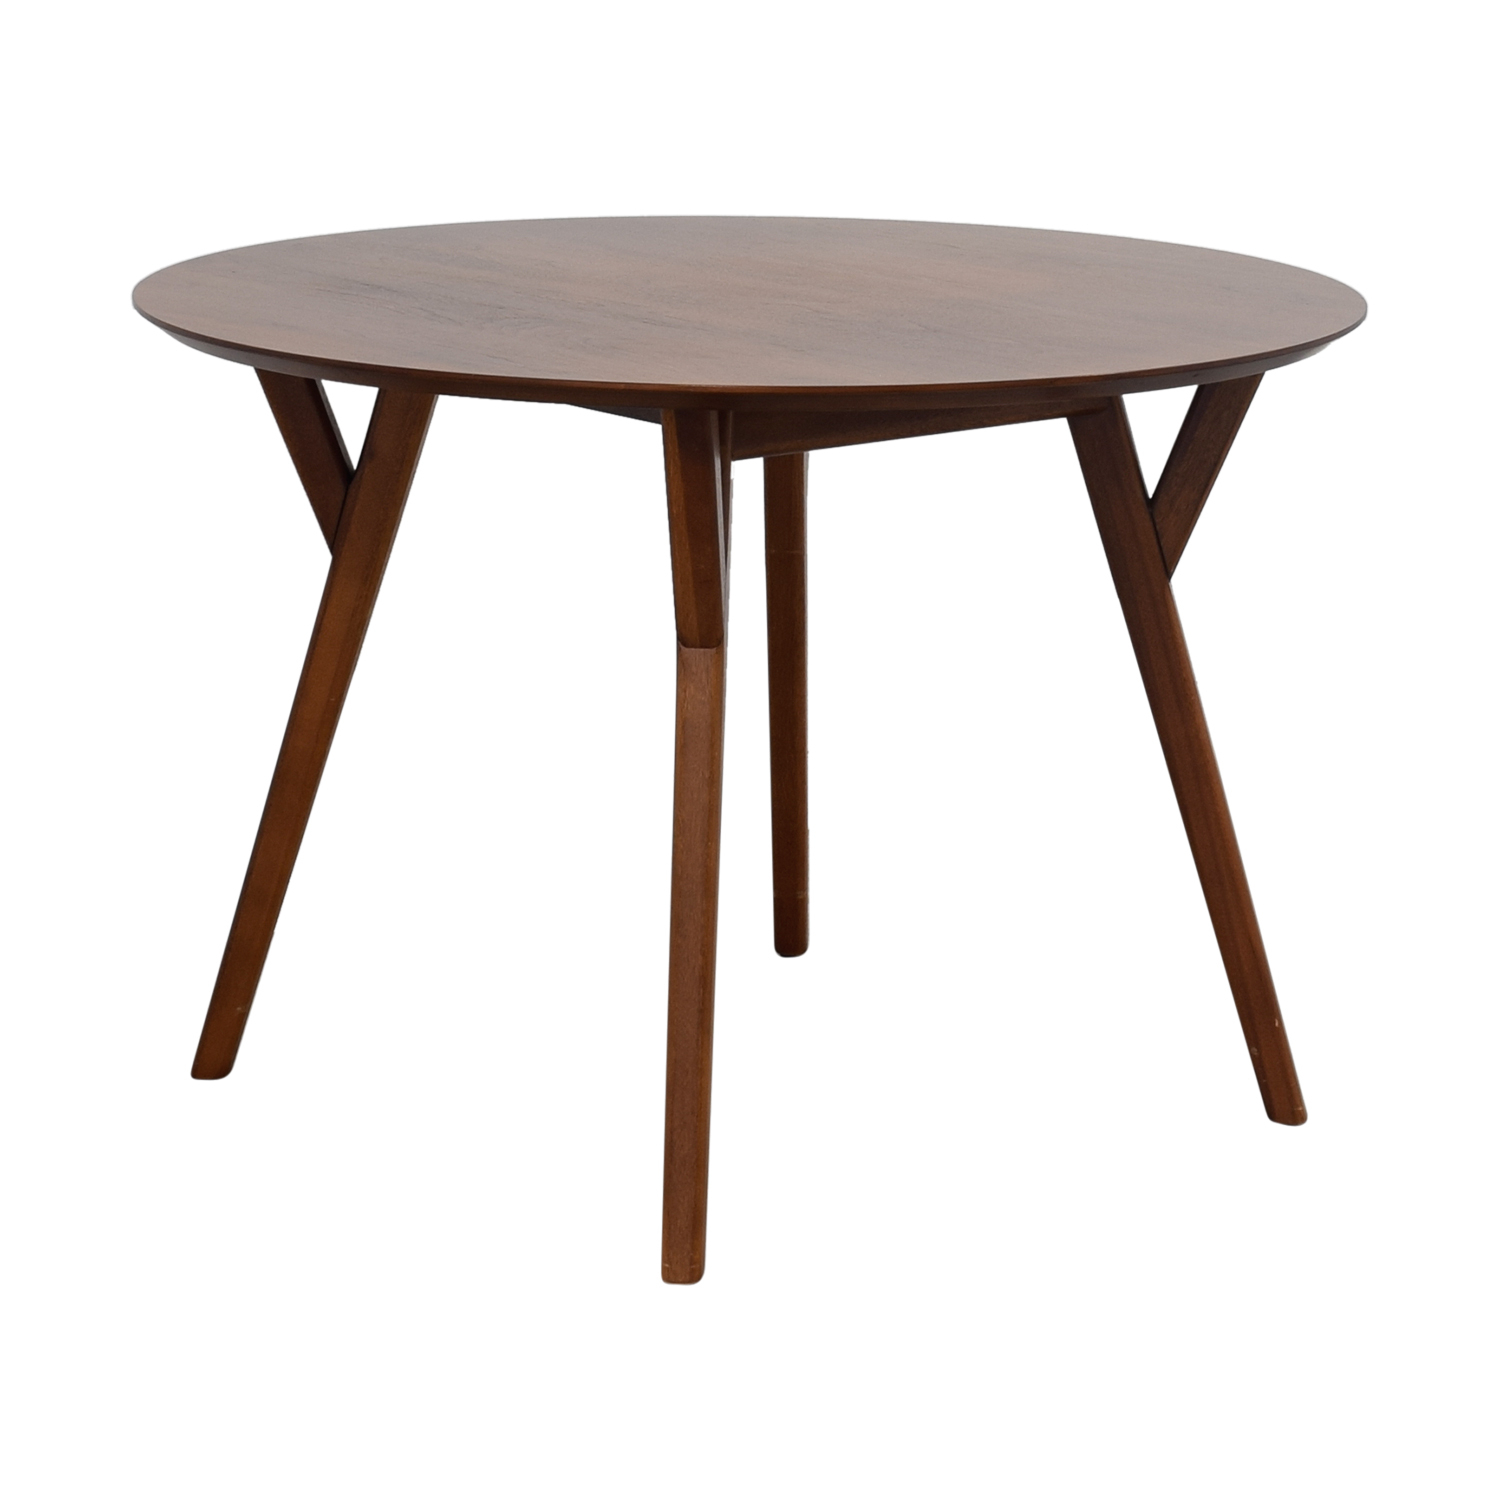 39% Off – West Elm West Elm Mid Century Walnut Round Dining Table / Tables Pertaining To Recent West Dining Tables (Image 2 of 25)